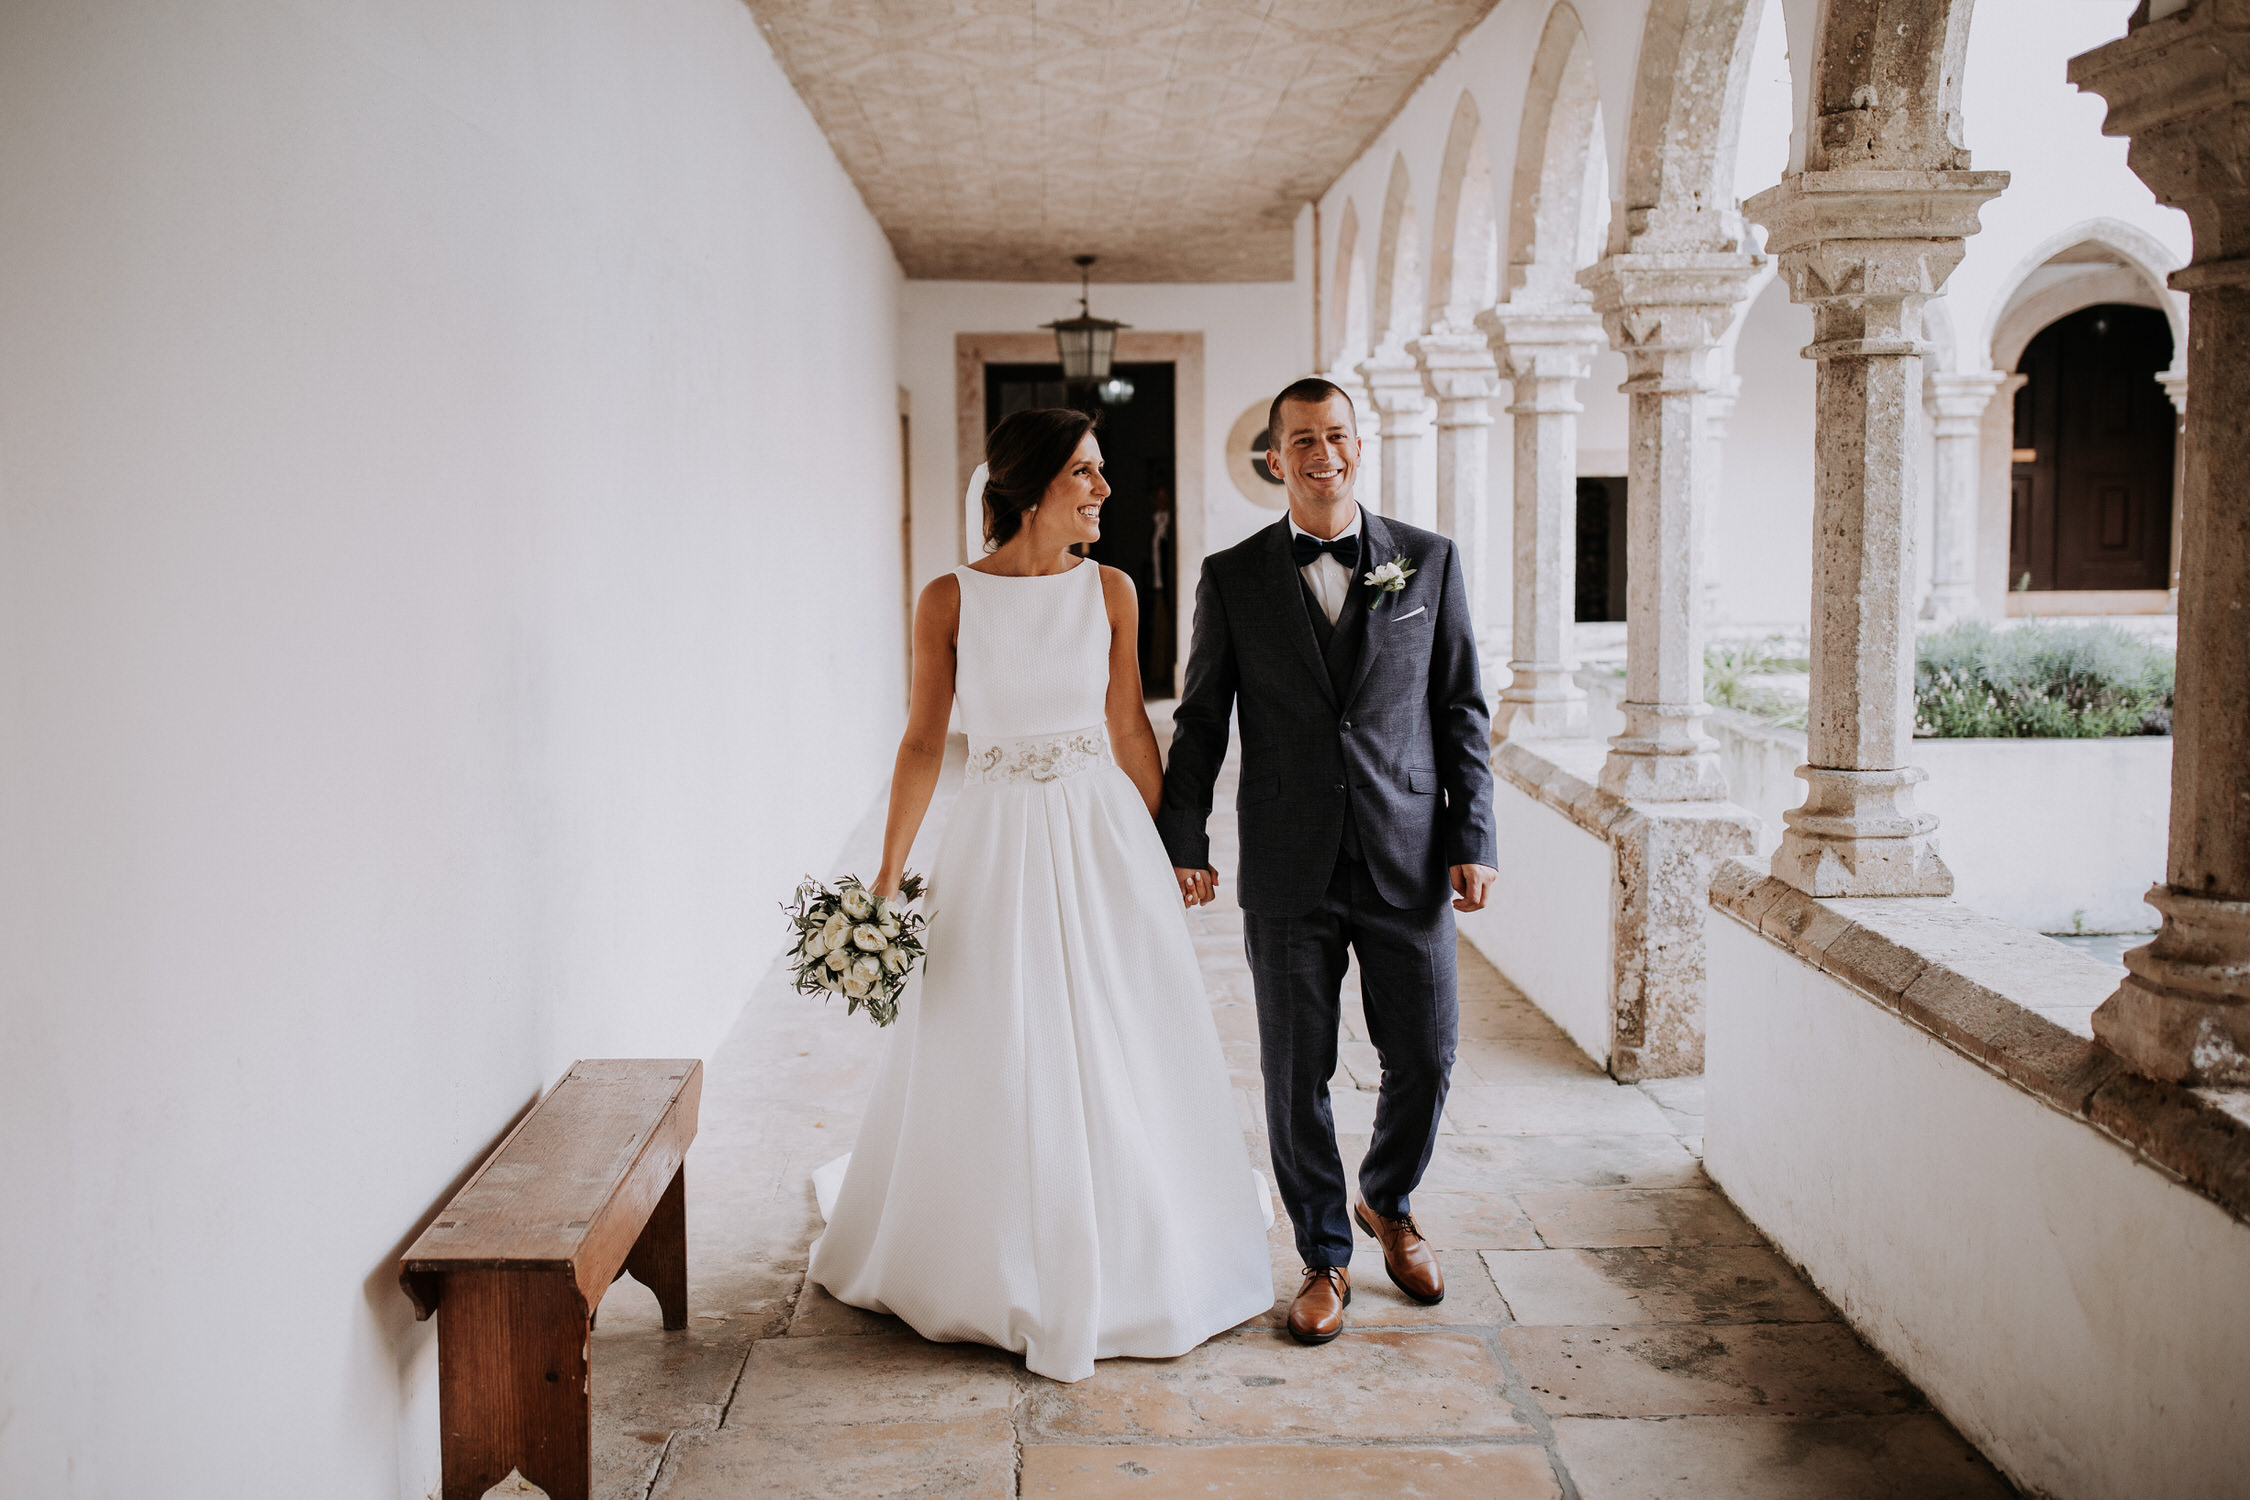 063 Filipe Santiago Fotografia Casamento wedding photographer near venue Lisbon Malveira Ericeira best Sintra Portugal destination